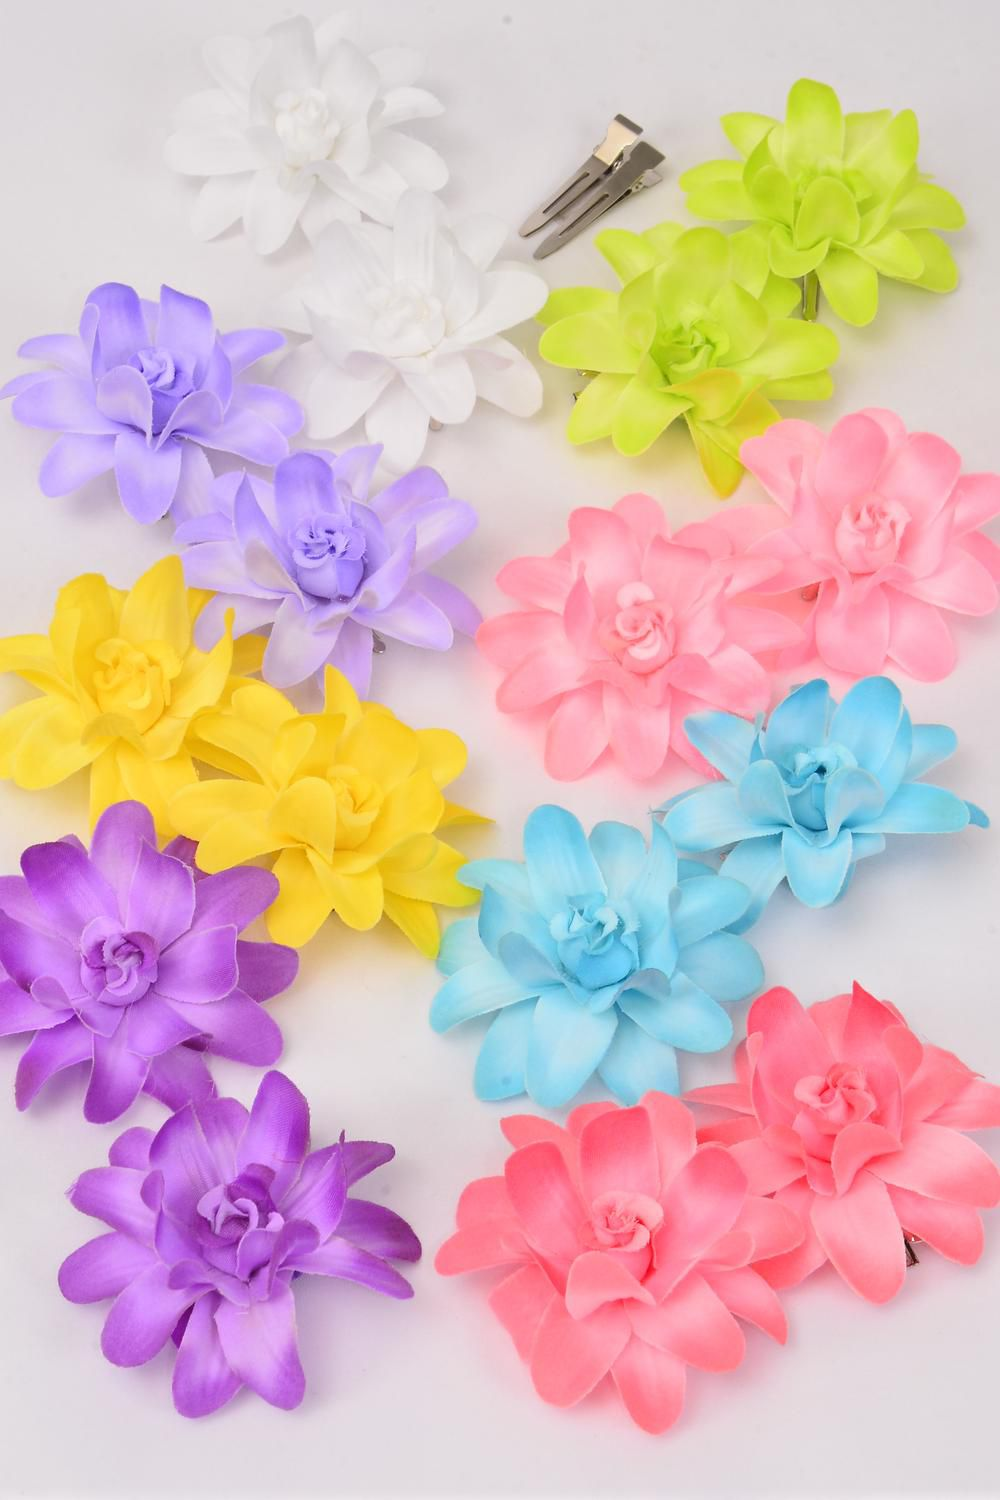 "Flowers 24 pcs Alligator Clip Pastel/DZ **Pastel** Flower Size-2.75"" Wide,2 Purple,2 Blue,2 Pink,2 Yellow,1 White,1 Lime,1 Lavender,1 Coral,8 Color Asst"